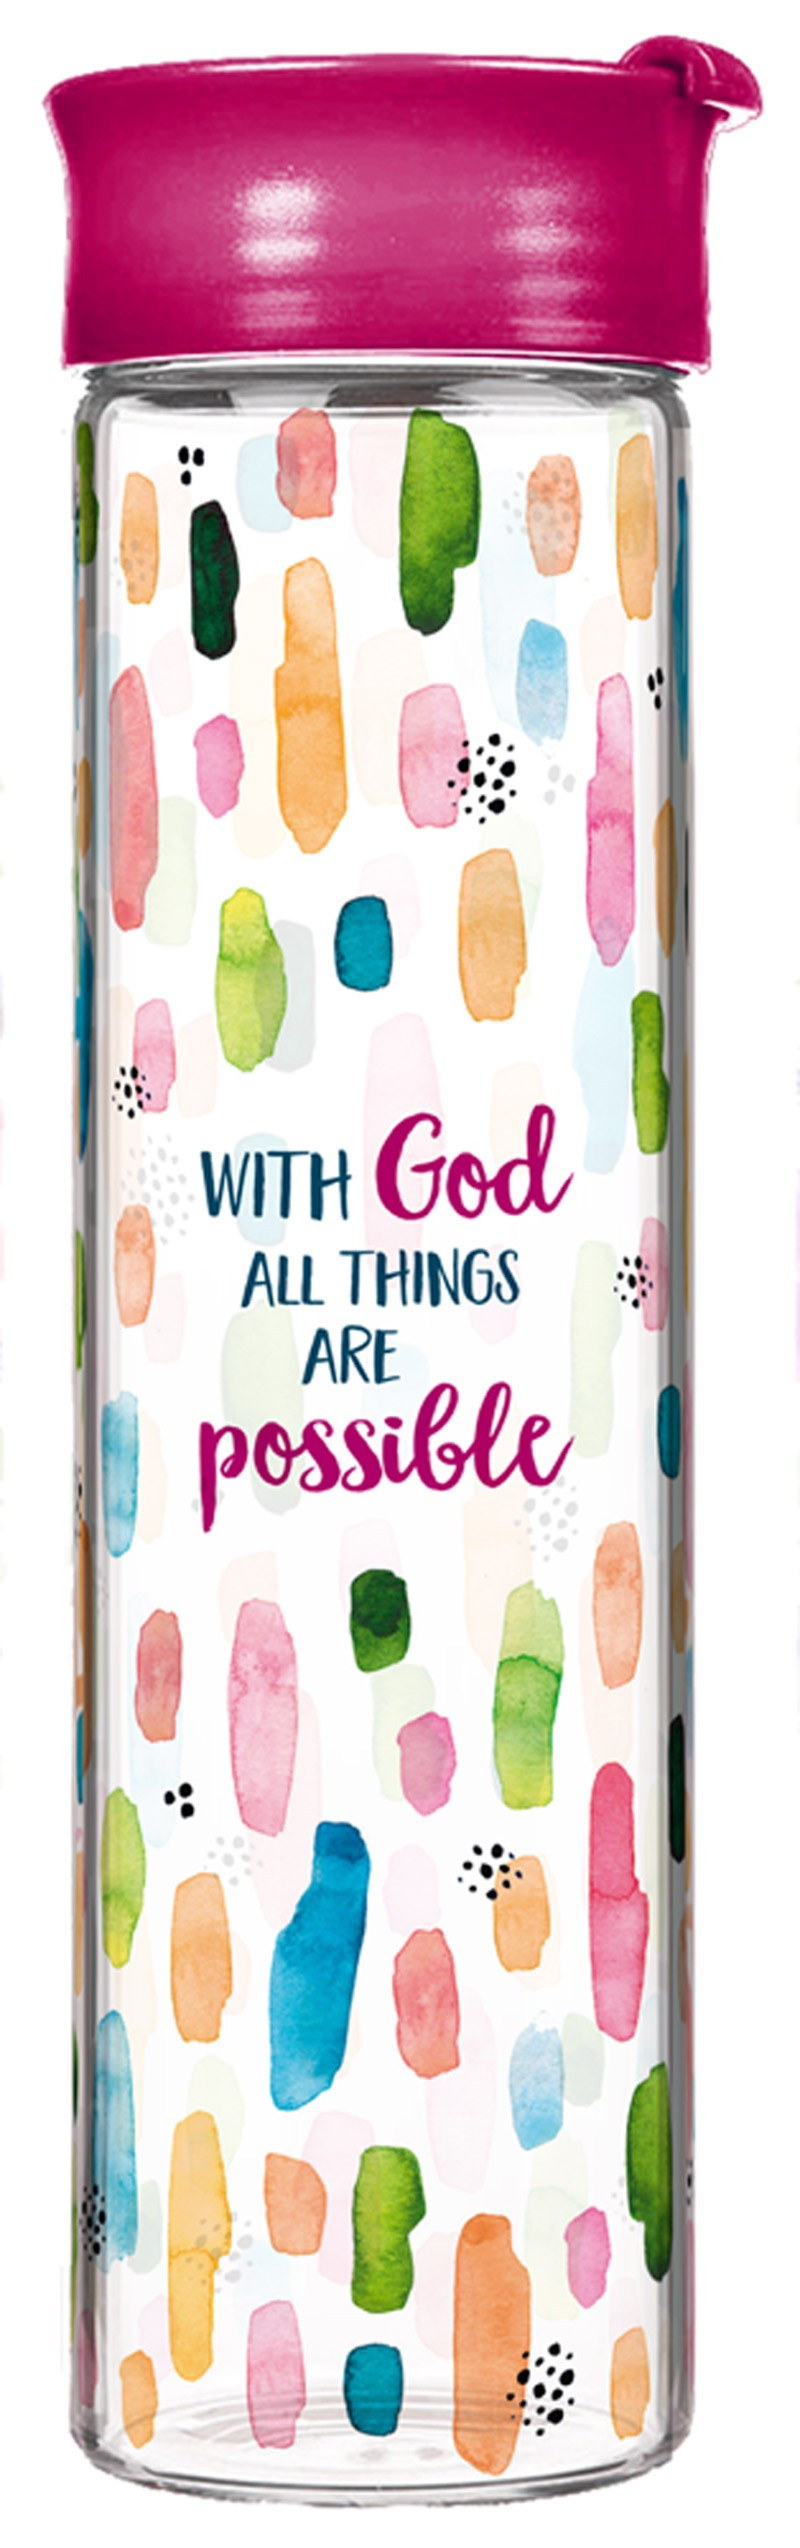 """Glasflasche """"With God all things are possible"""""""